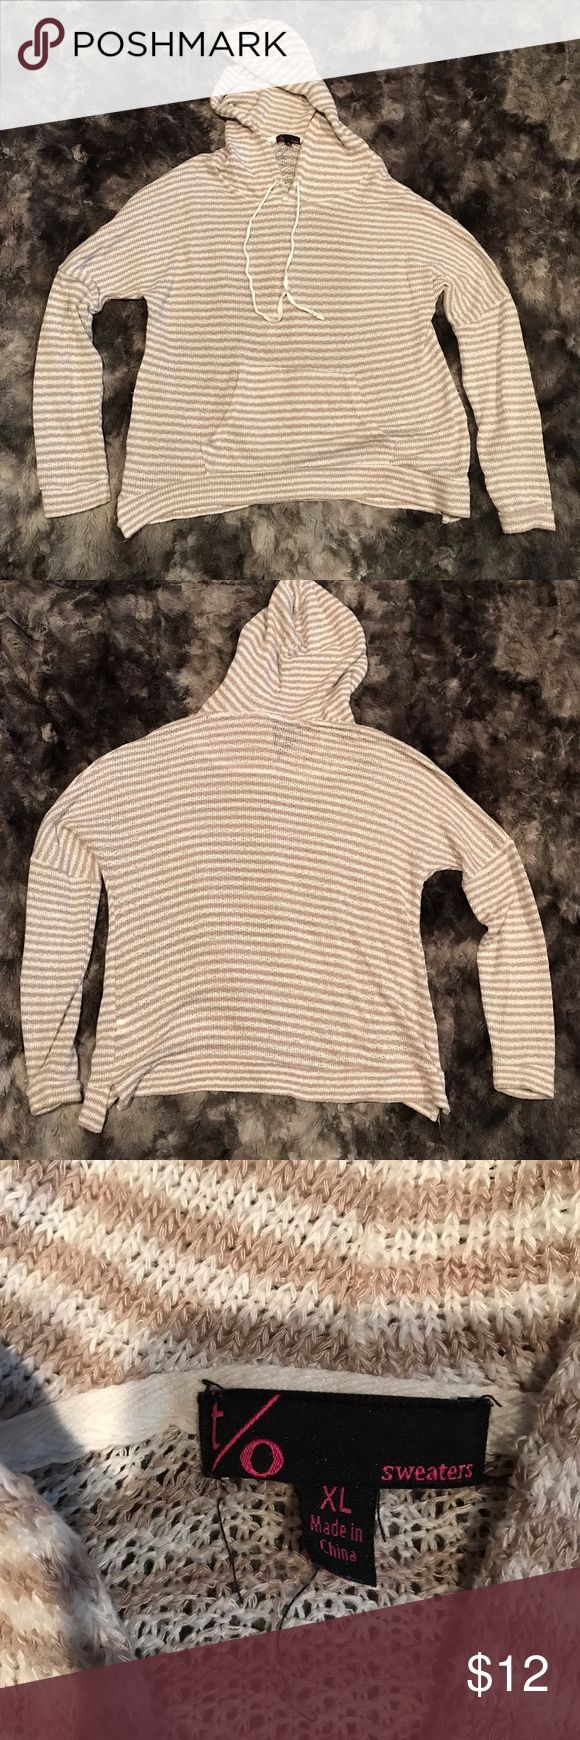 """Womens XL loose knit sweater hoodie striped beige Women's size XL hoodie sweater by T/O. It is loose knit, beige & white striped. Perfect lightweight sweater for the beach or summer. In excellent condition. Length-26"""" armpit to armpit-22"""" T/O Sweaters Tops Sweatshirts & Hoodies"""